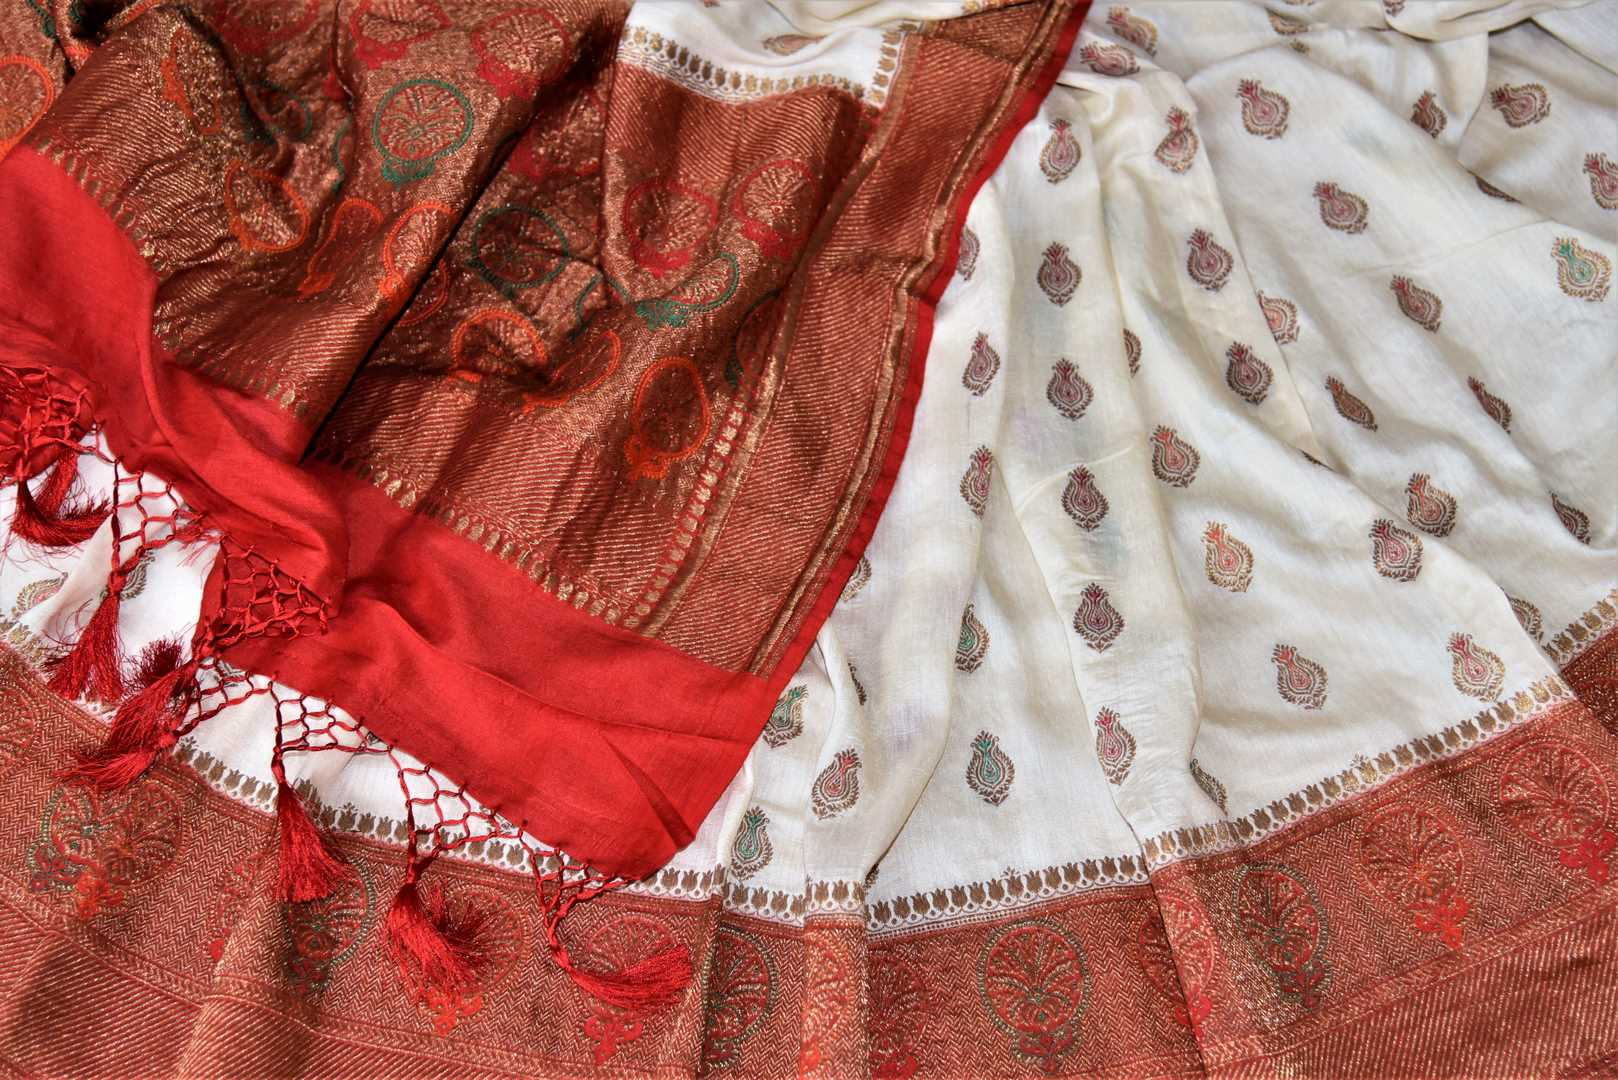 Buy lovely off-white muga Banarasi saree online in USA with red antique zari floral border. Keep your ethnic style updated with latest designer sarees, handloom sarees, pure silk sarees from Pure Elegance Indian fashion store in USA.-details